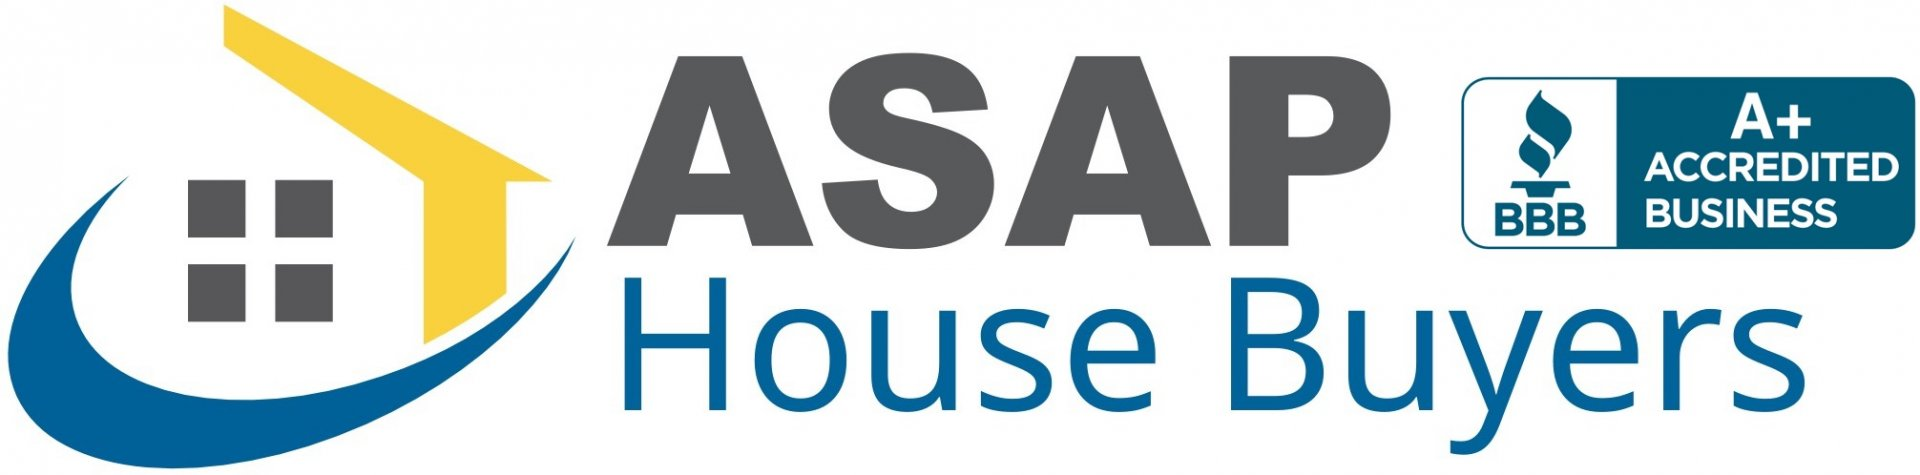 ASAP House Buyers  logo